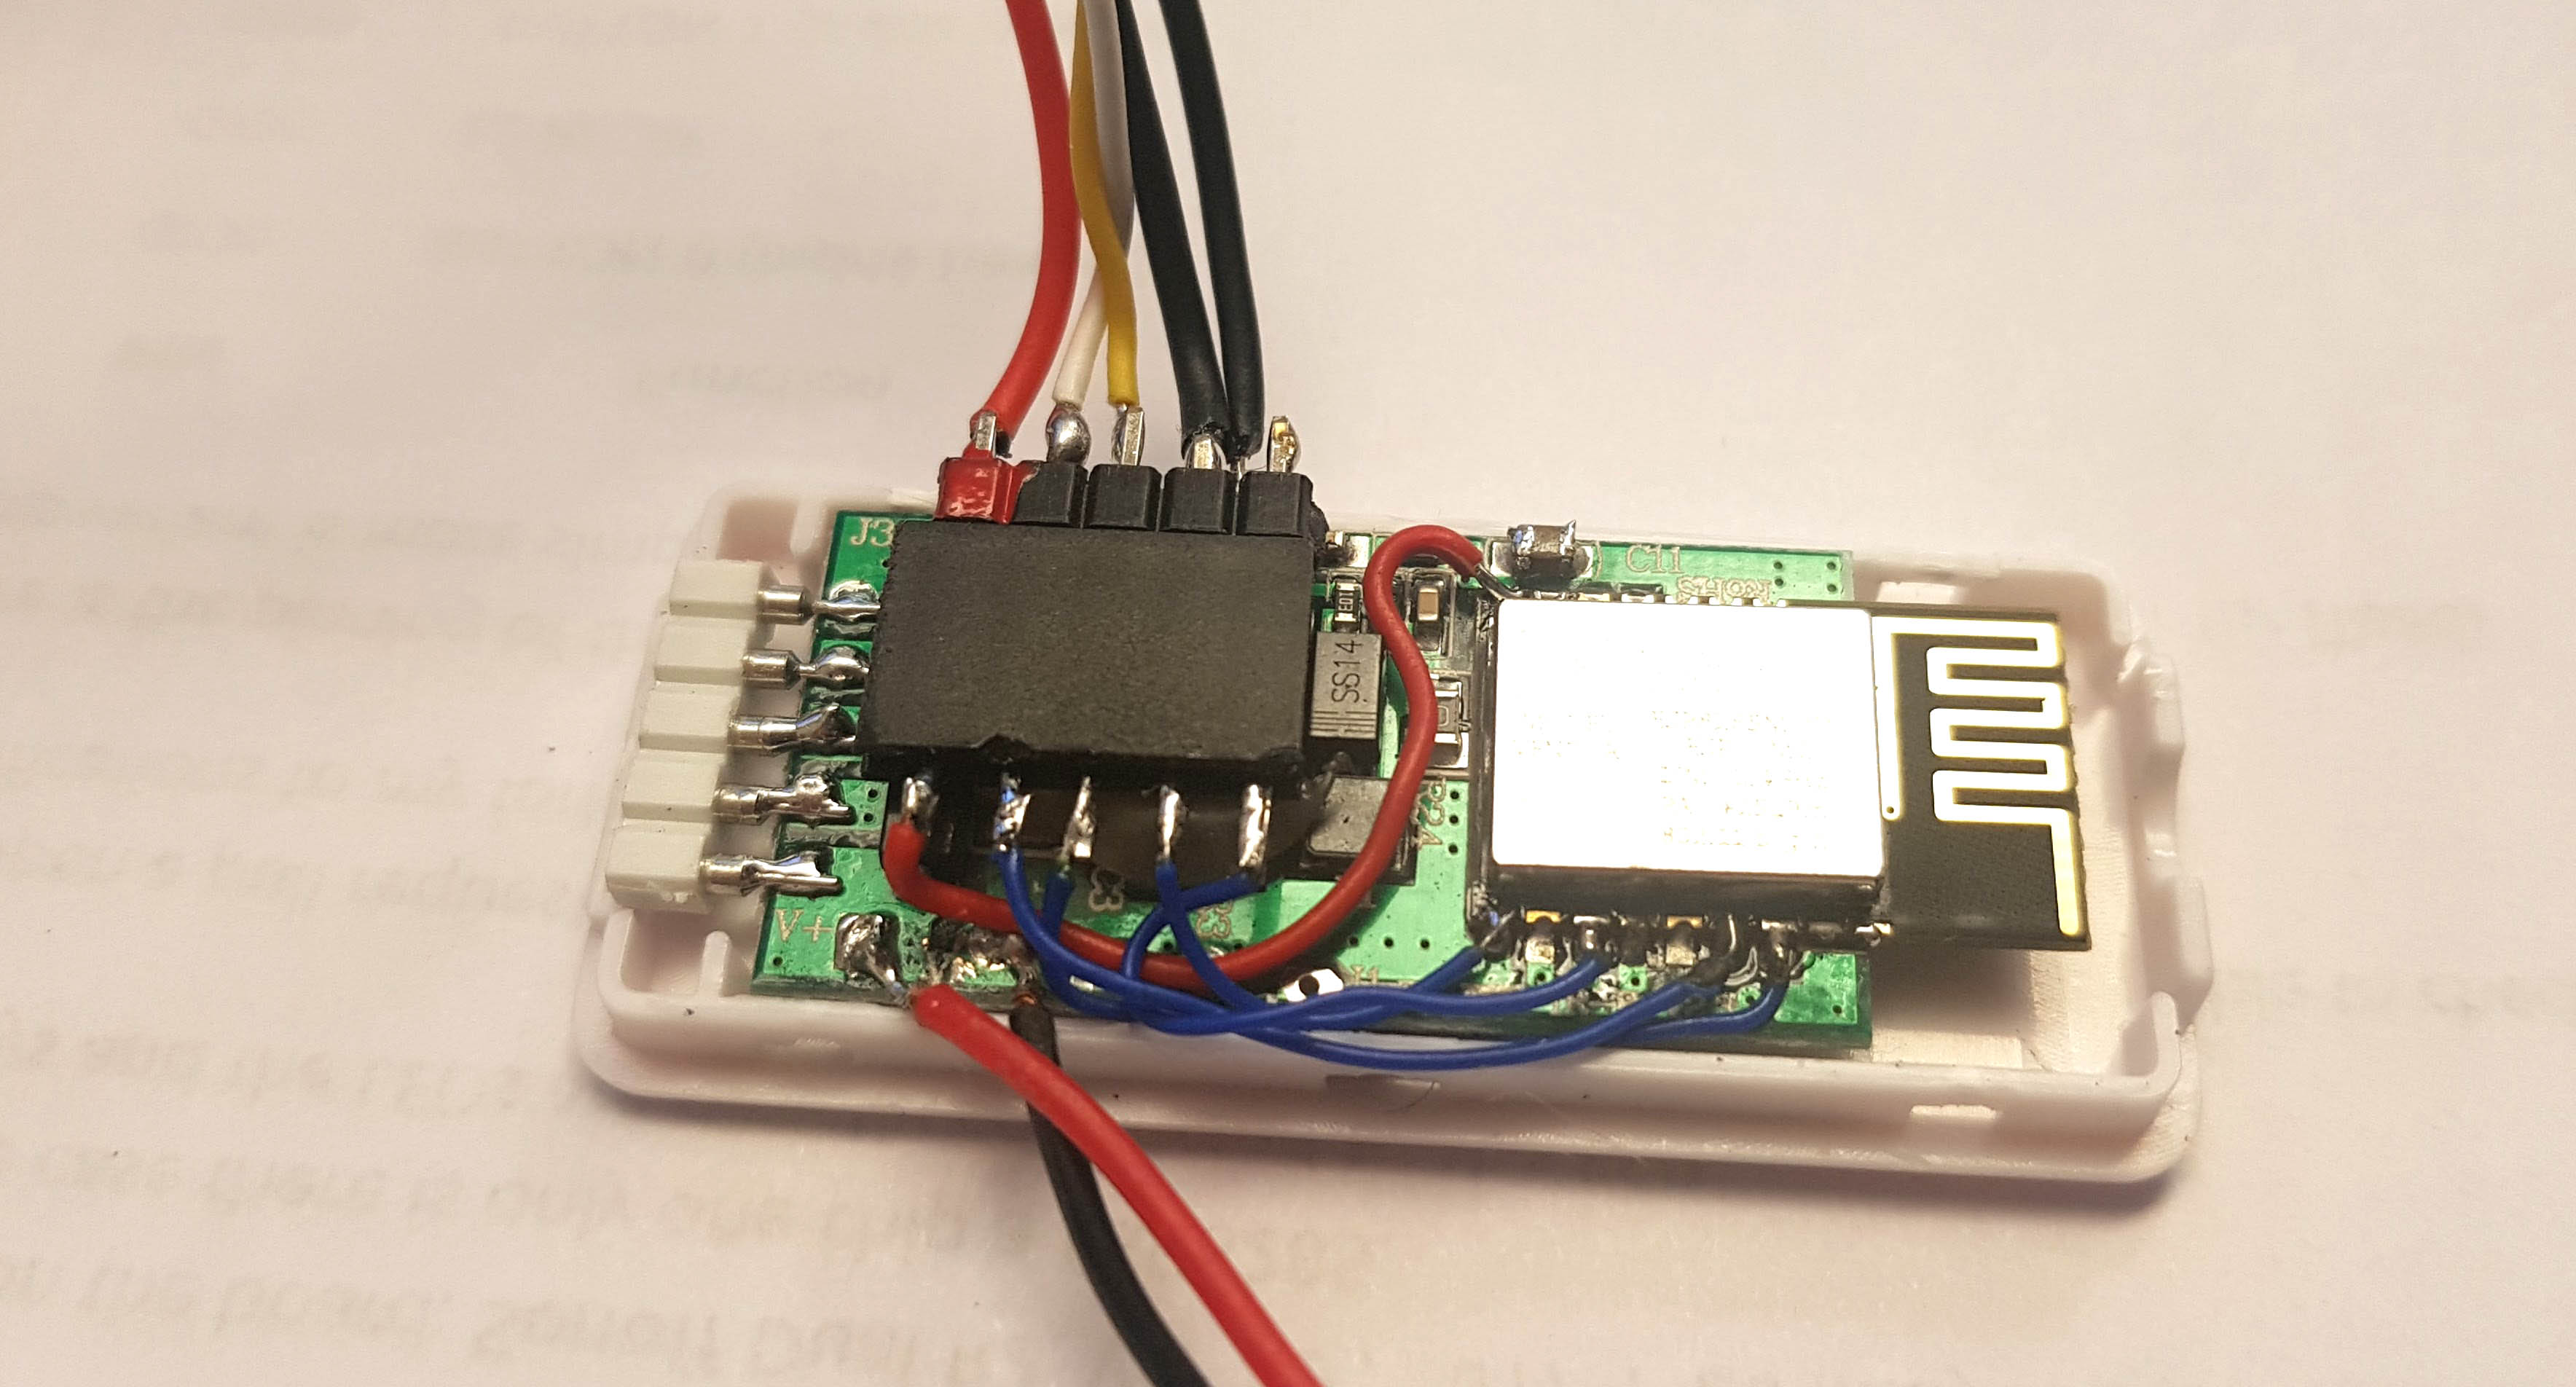 Magichome Led Esp Ir B V23 Esp8285mod M2 Not Working With Structured Wiring Homepro S At A Glance 20180211 183423